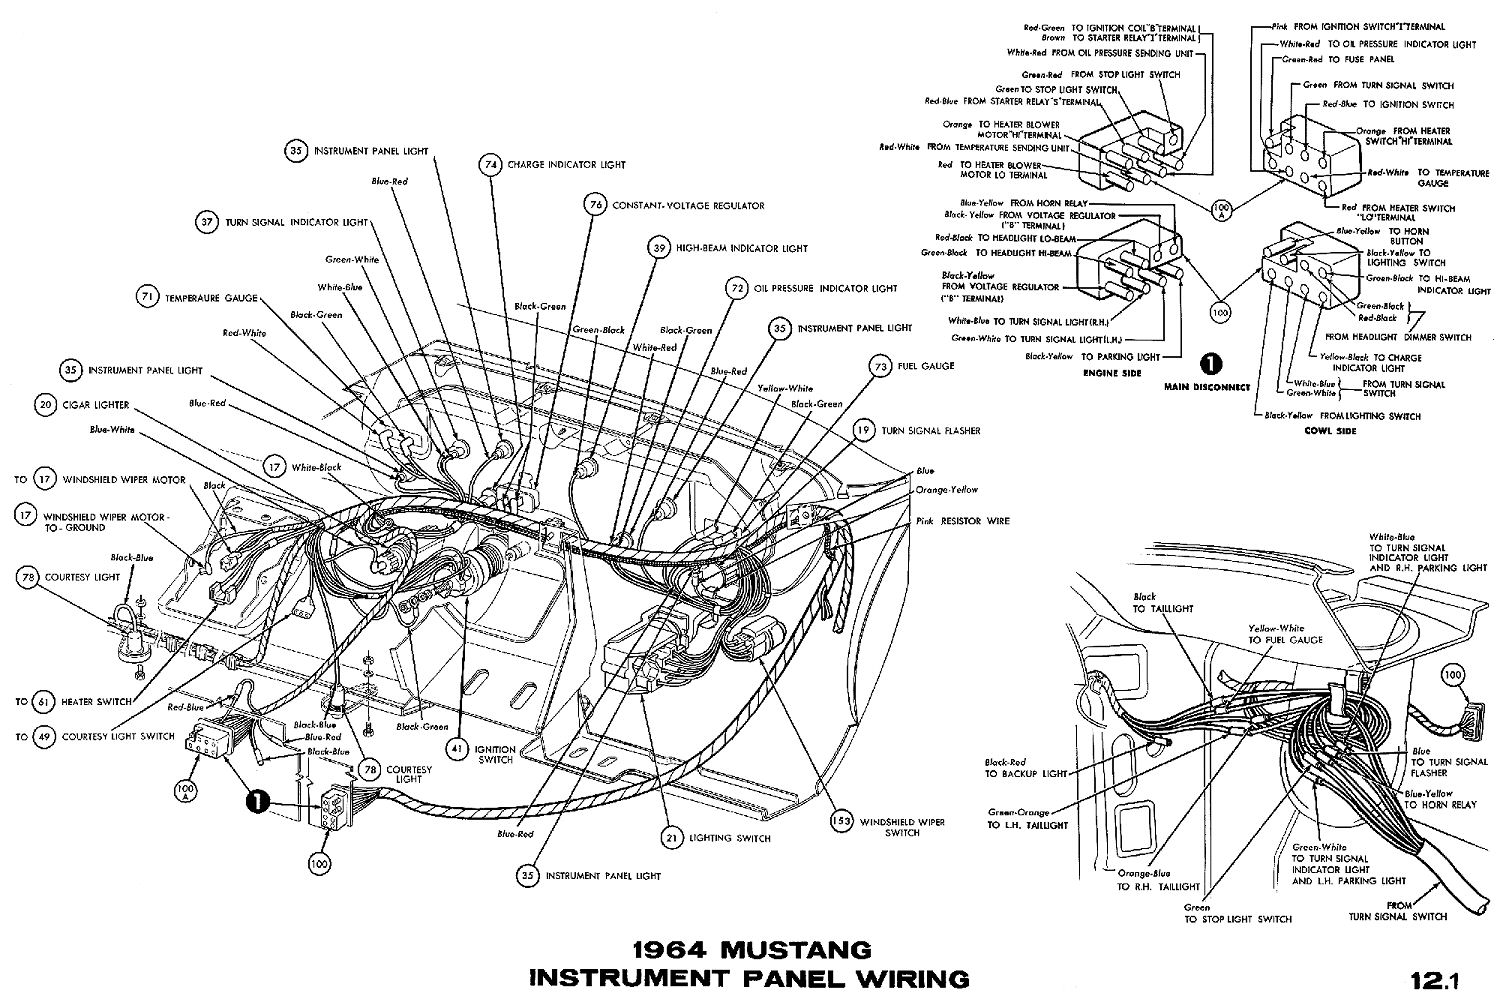 1964b 1964 mustang wiring diagrams average joe restoration ford 3000 instrument panel wiring diagram at bakdesigns.co